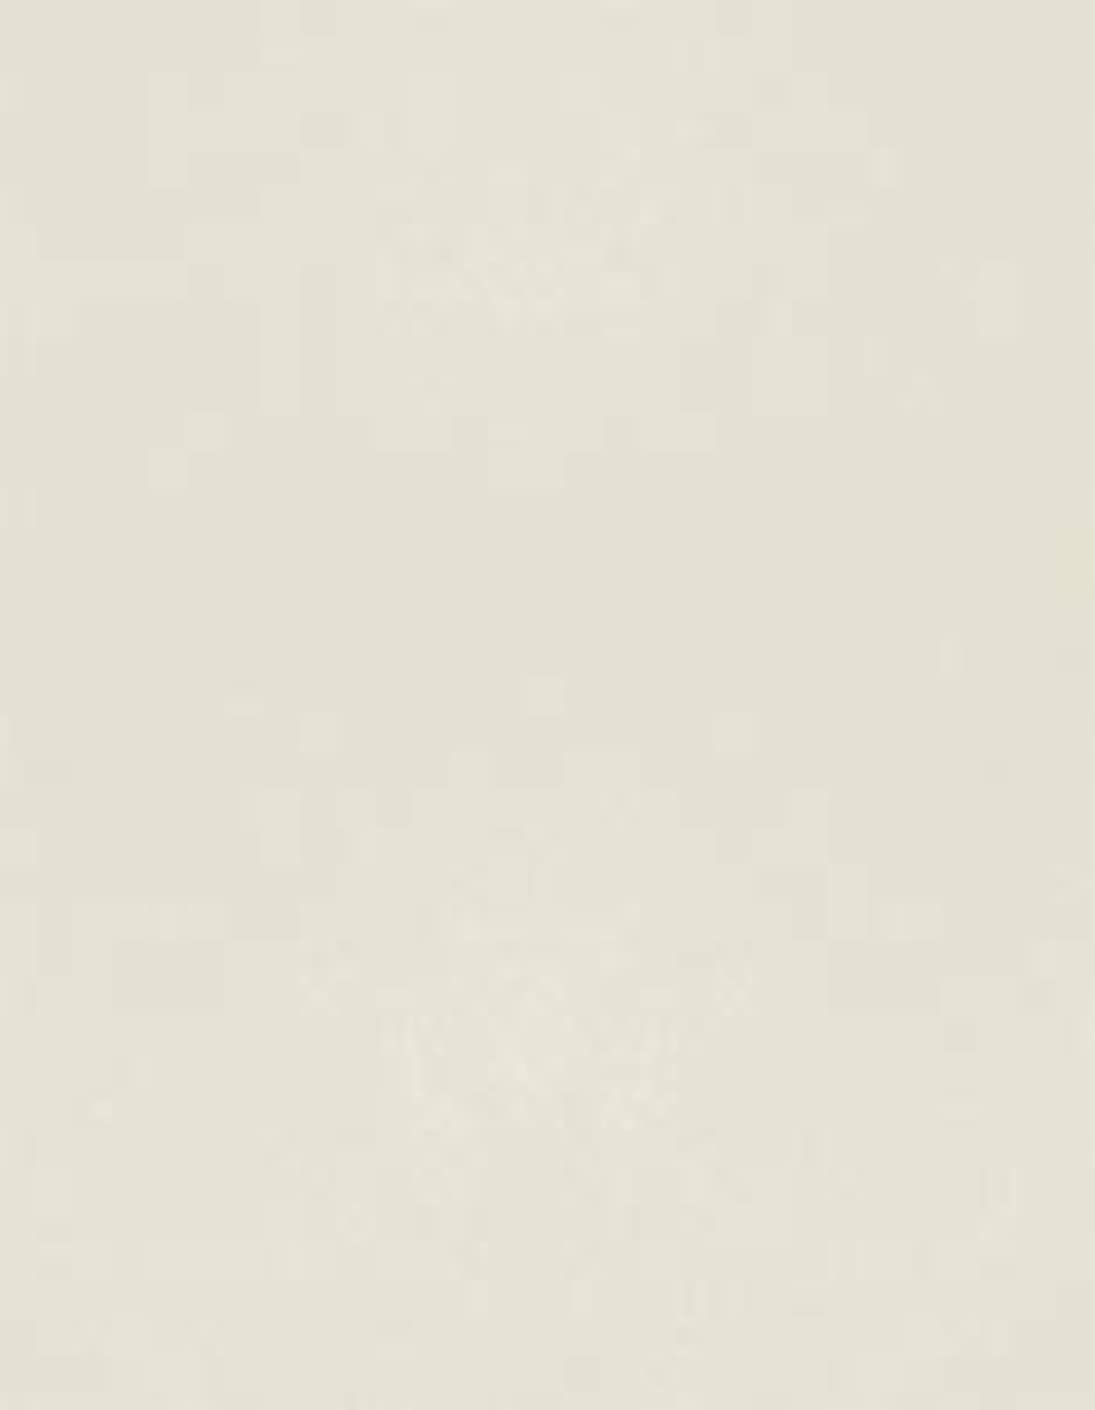 Crest Natural White 80 lb. Cardstock Paper - 8.5 x 11 inch Cover - 25 Sheets